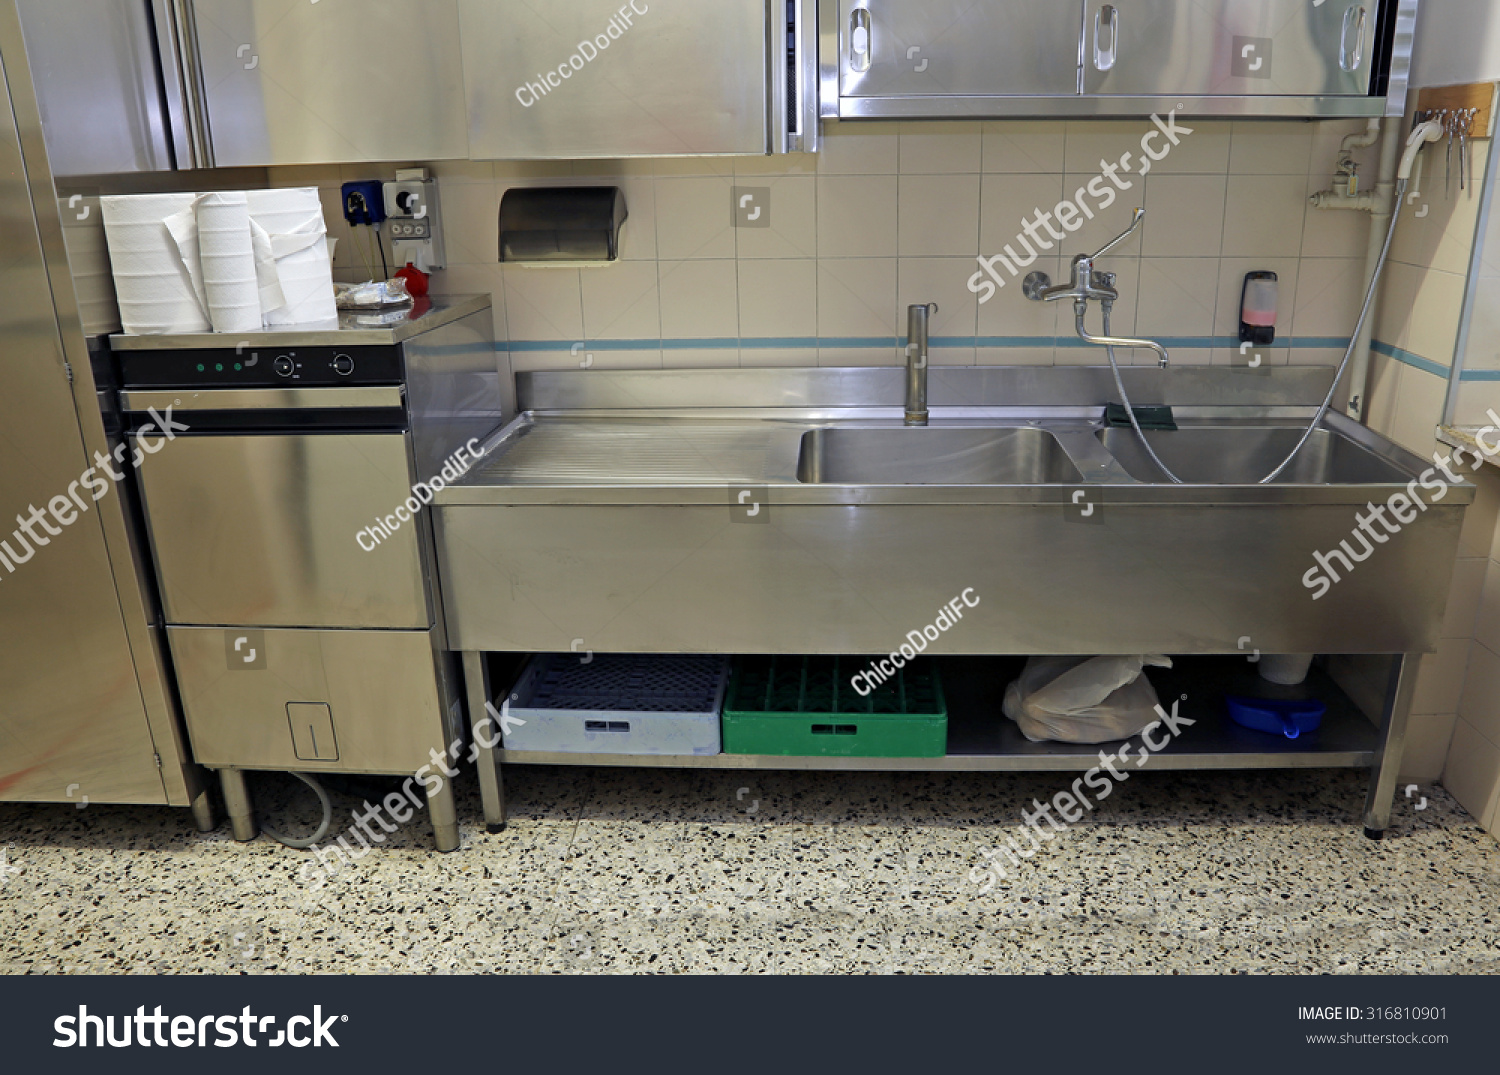 Large Stainless Steel Sink Industrial Kitchen Stock Photo (Edit Now ...